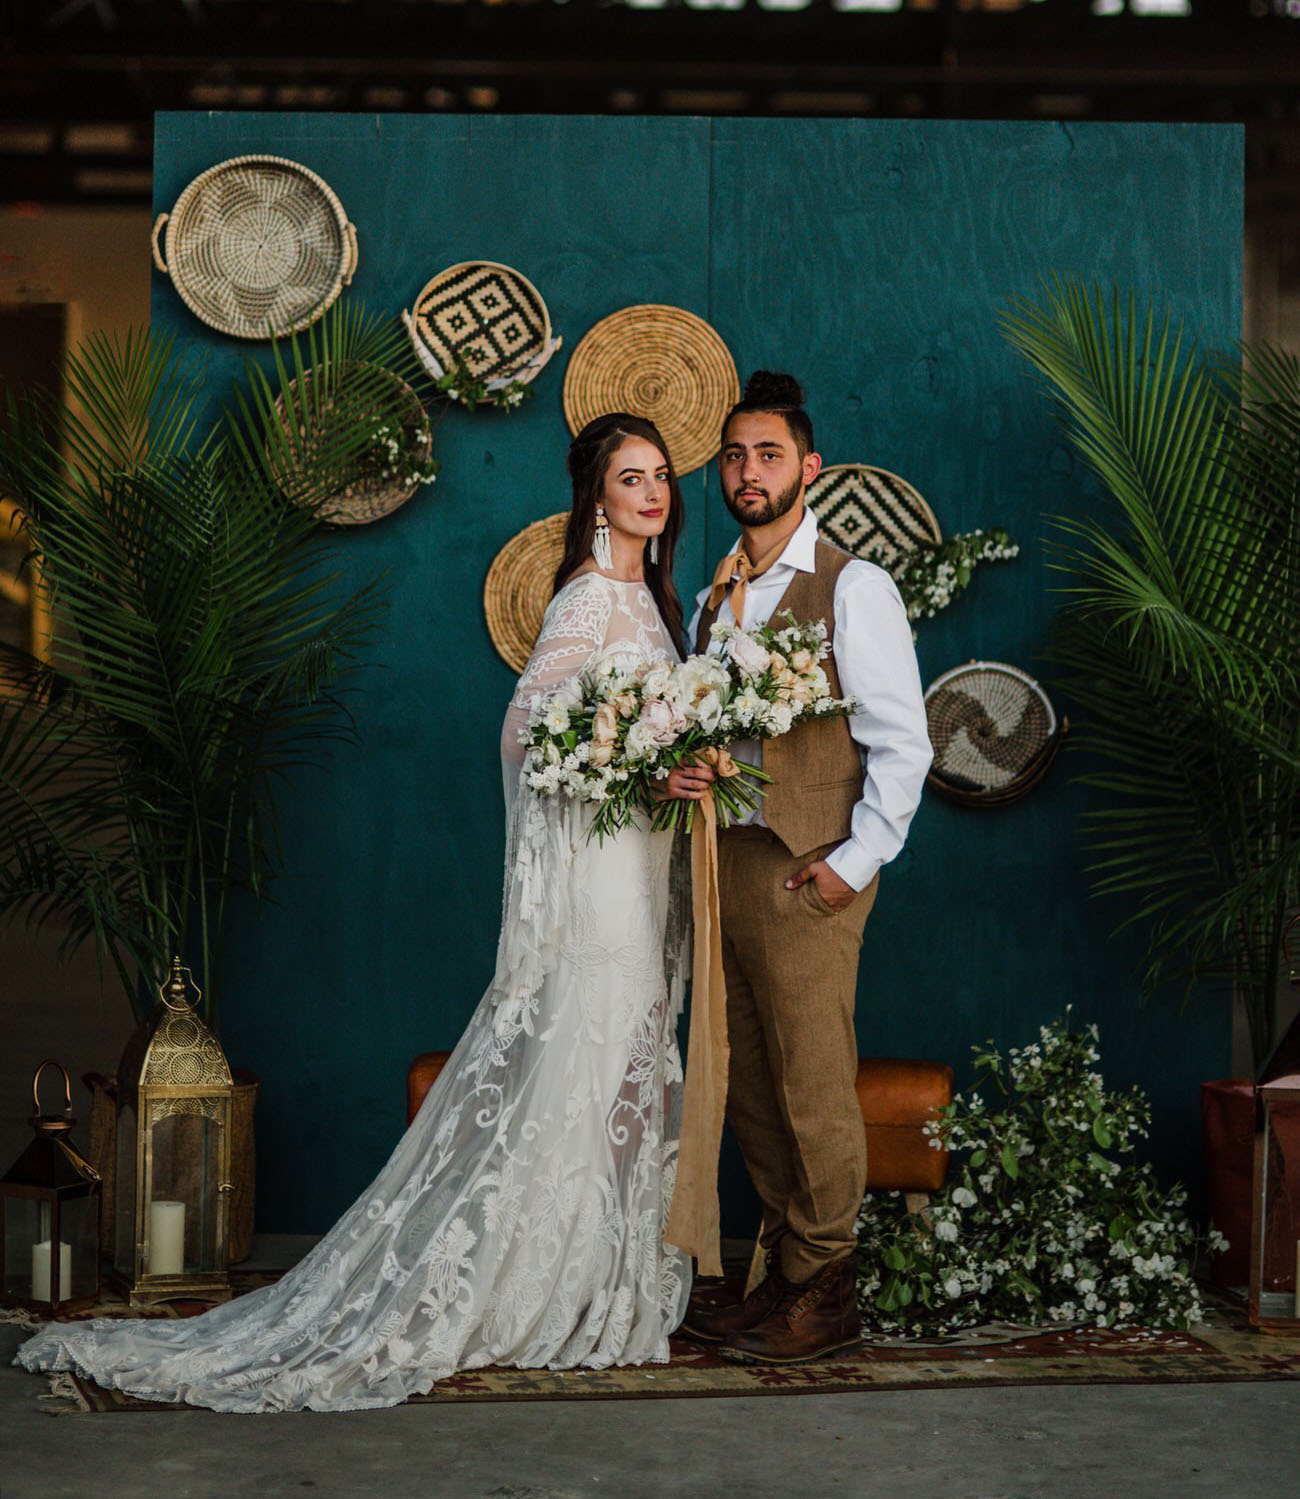 The groom was wearing a three piece earthy suit, brown combat boots and a top knot